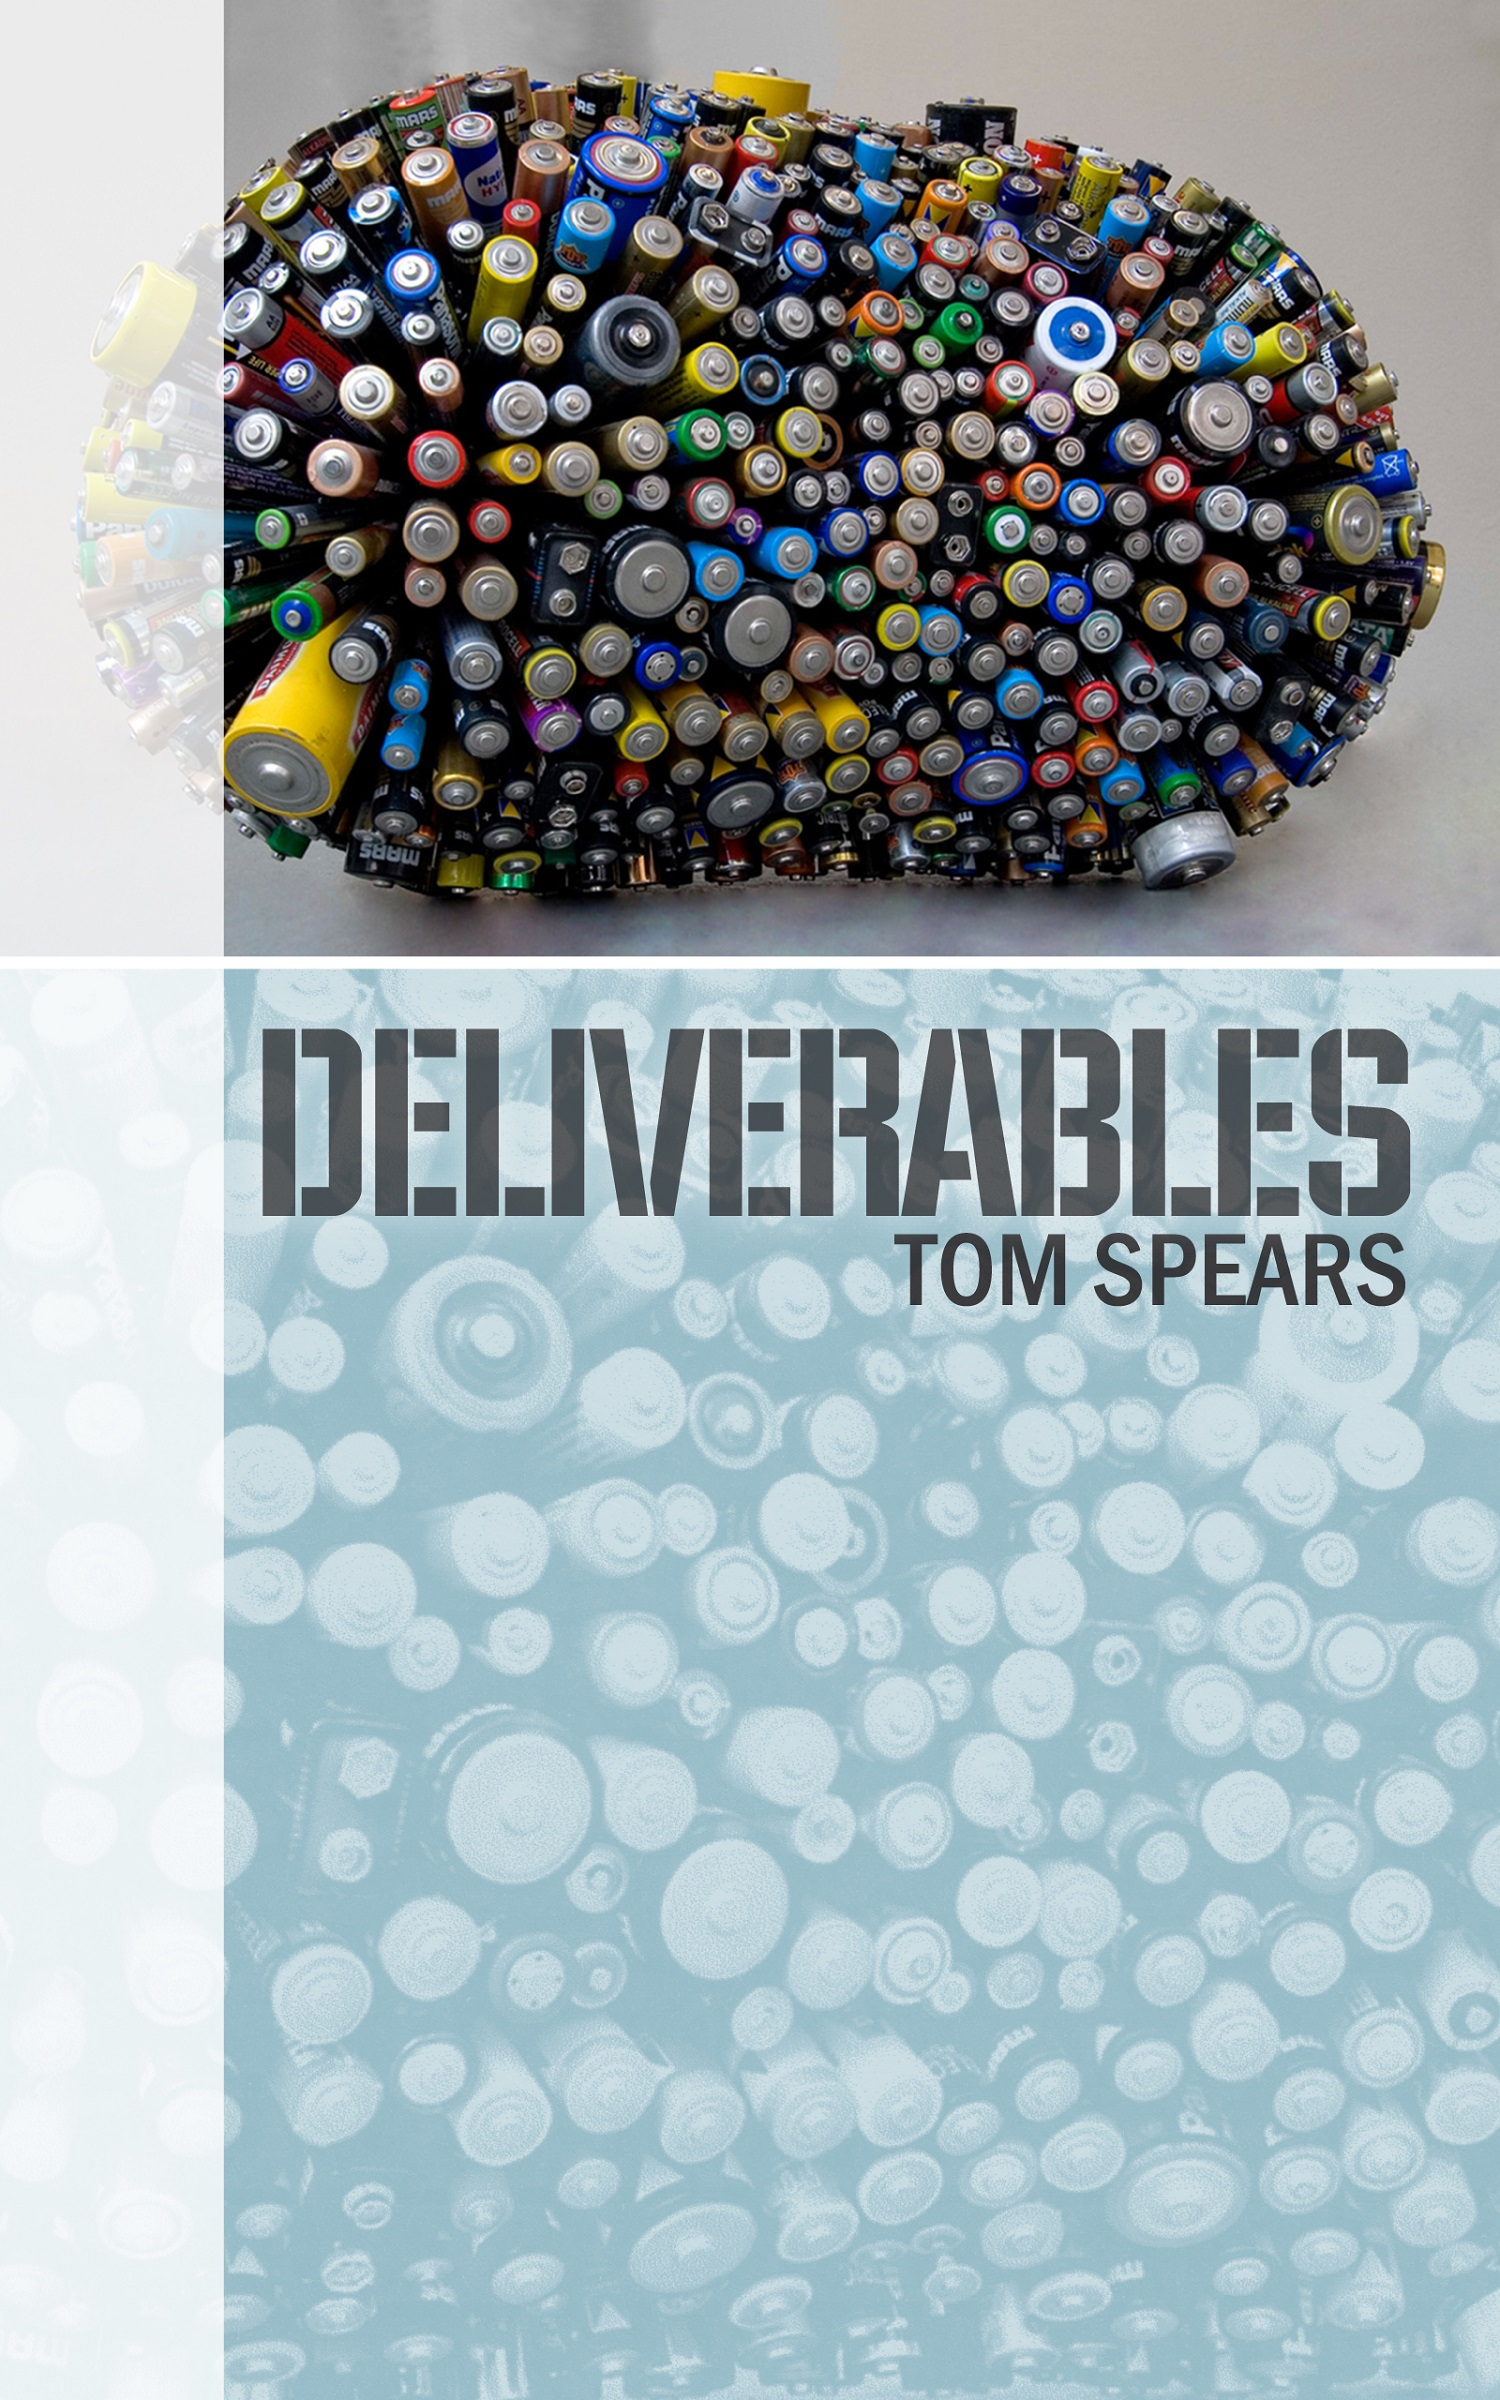 Deliverables is the prequel to Heir Apparent